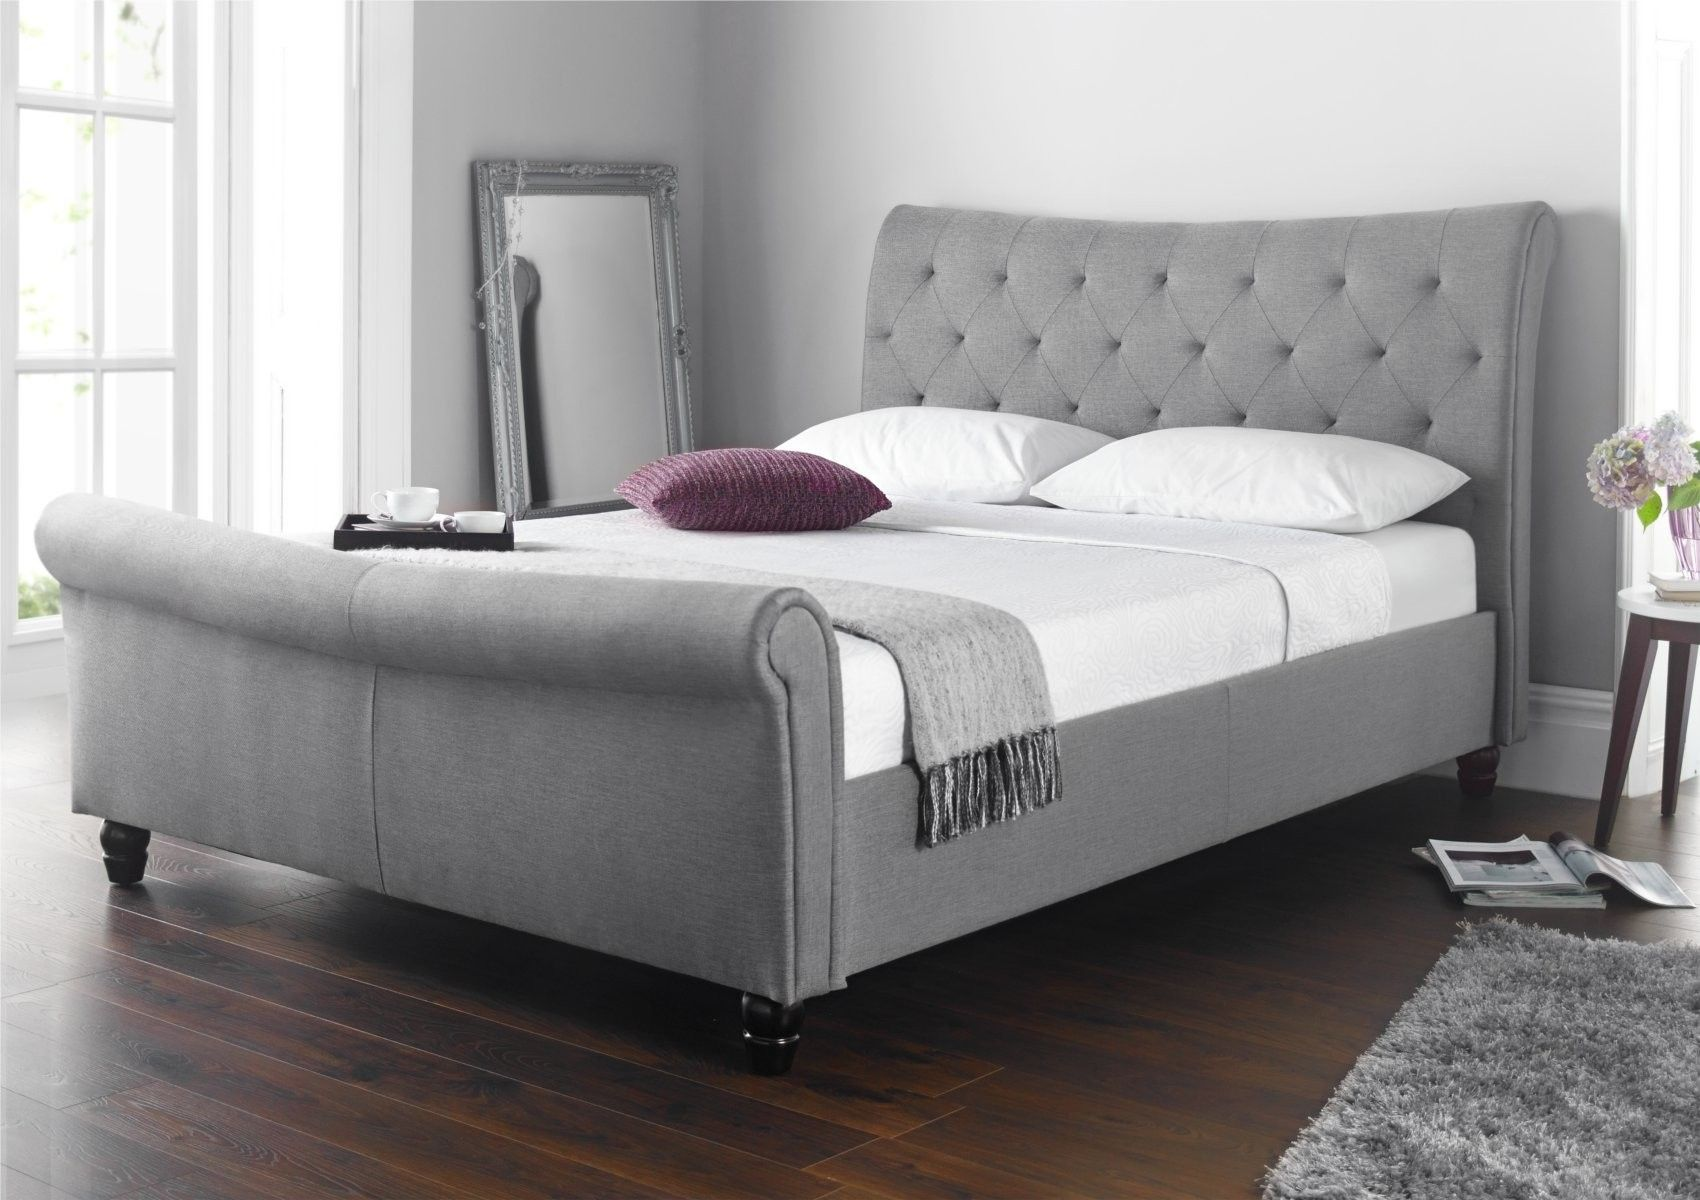 Upholstered sleigh bed frame - Seville Upholstered Sleigh Bed Grey King Size Beds Bed Sizes